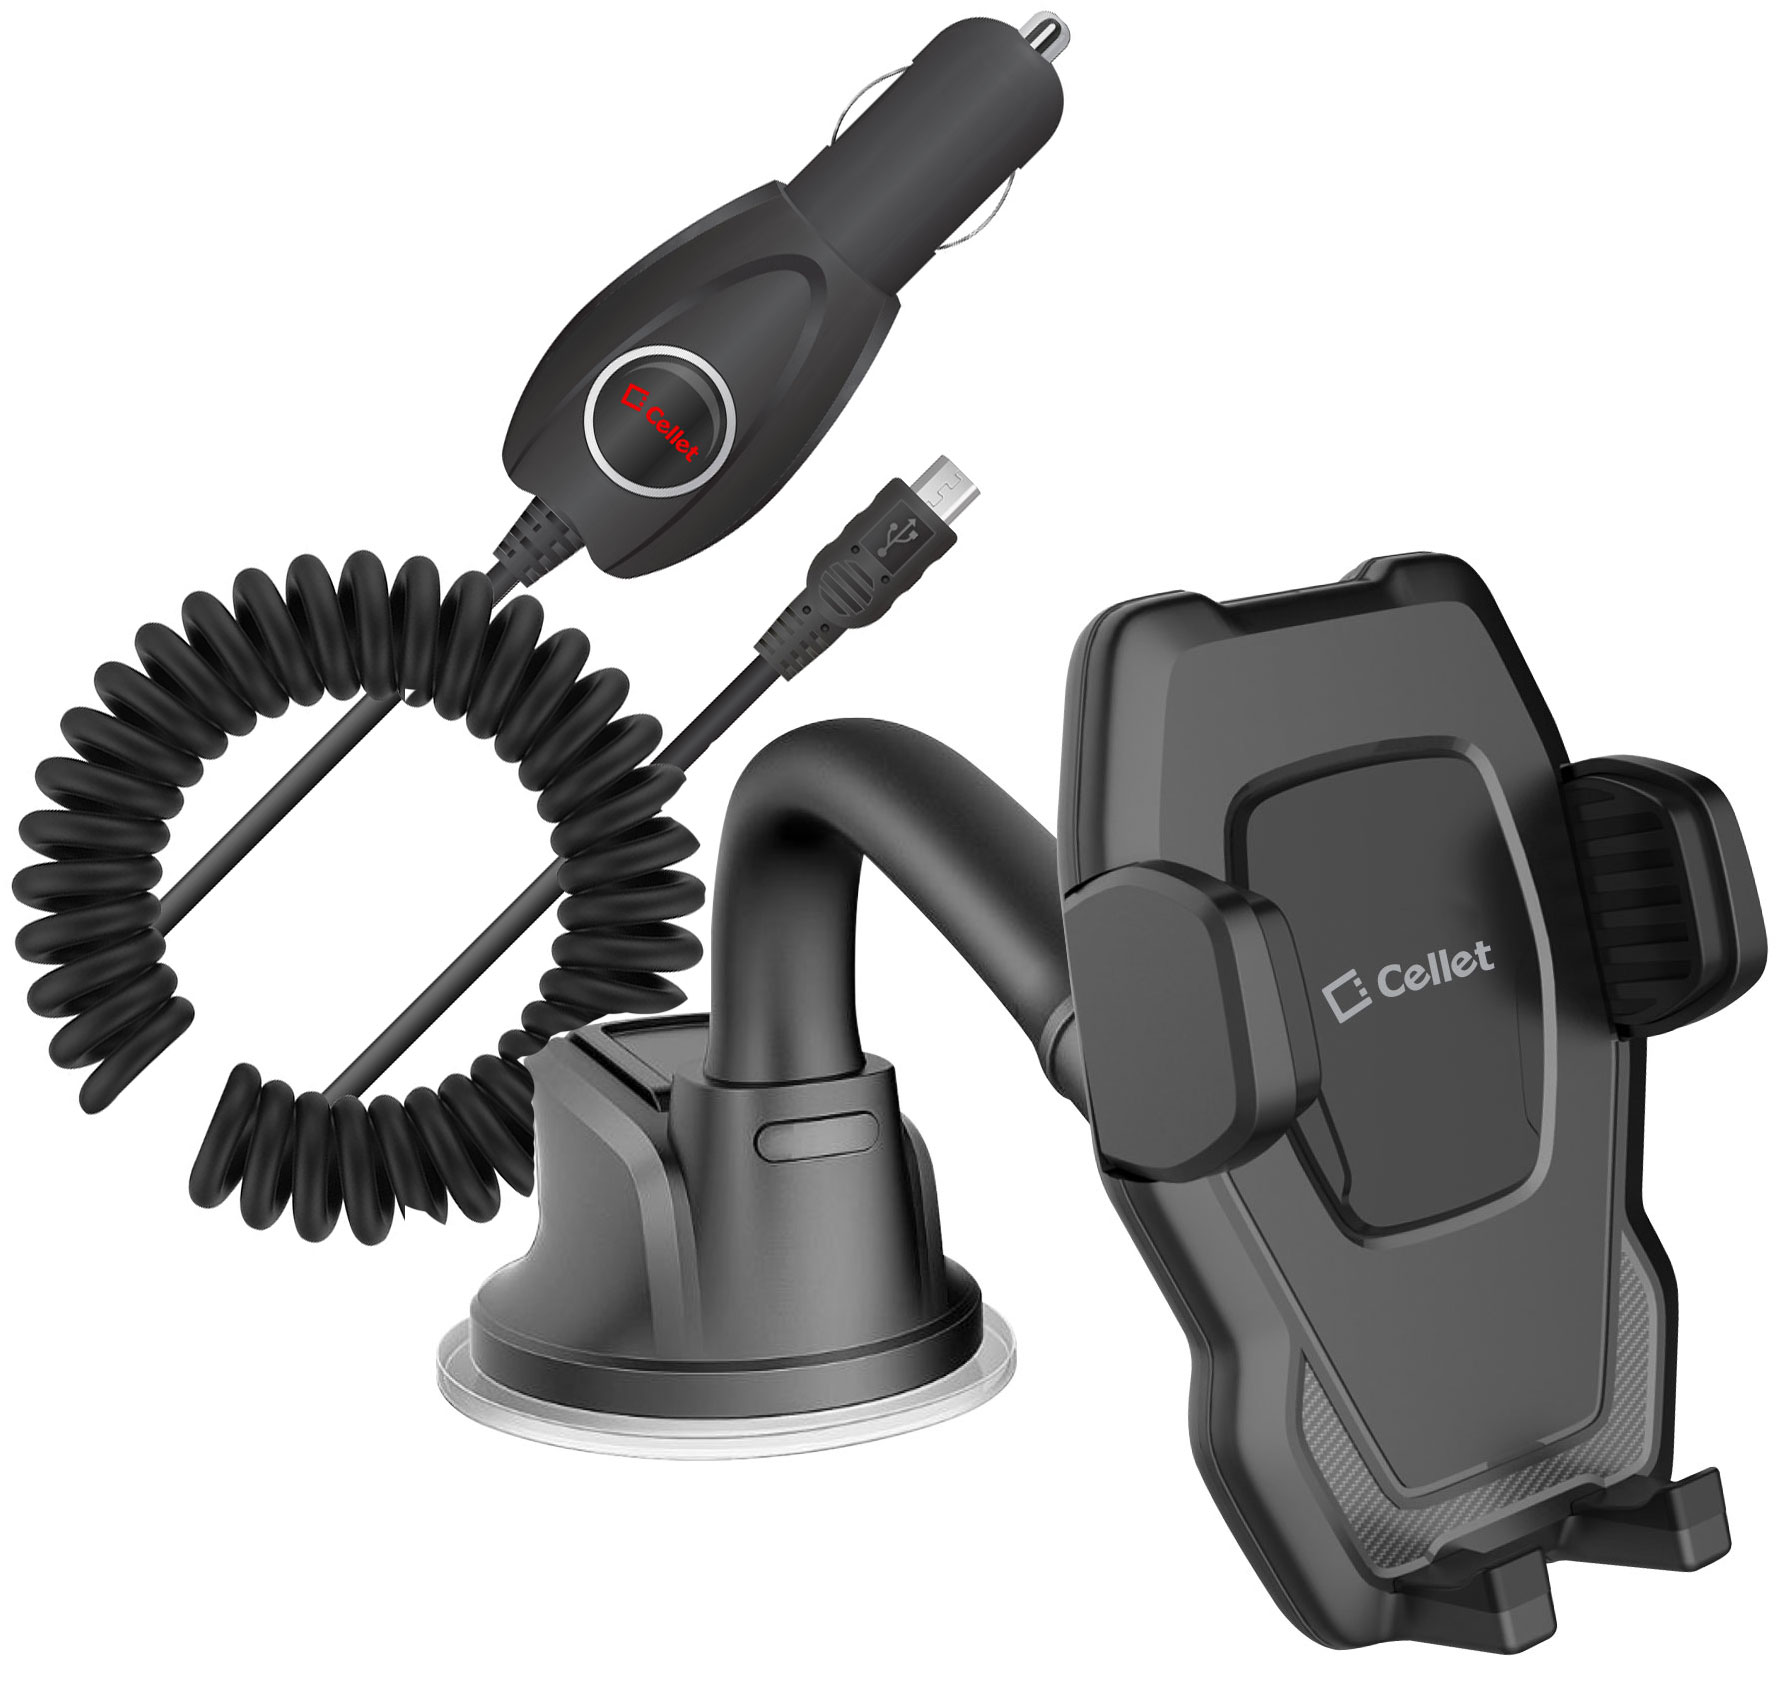 Huawei Honor 5X Windshield Phone Holder Goose Neck Car Charger Black